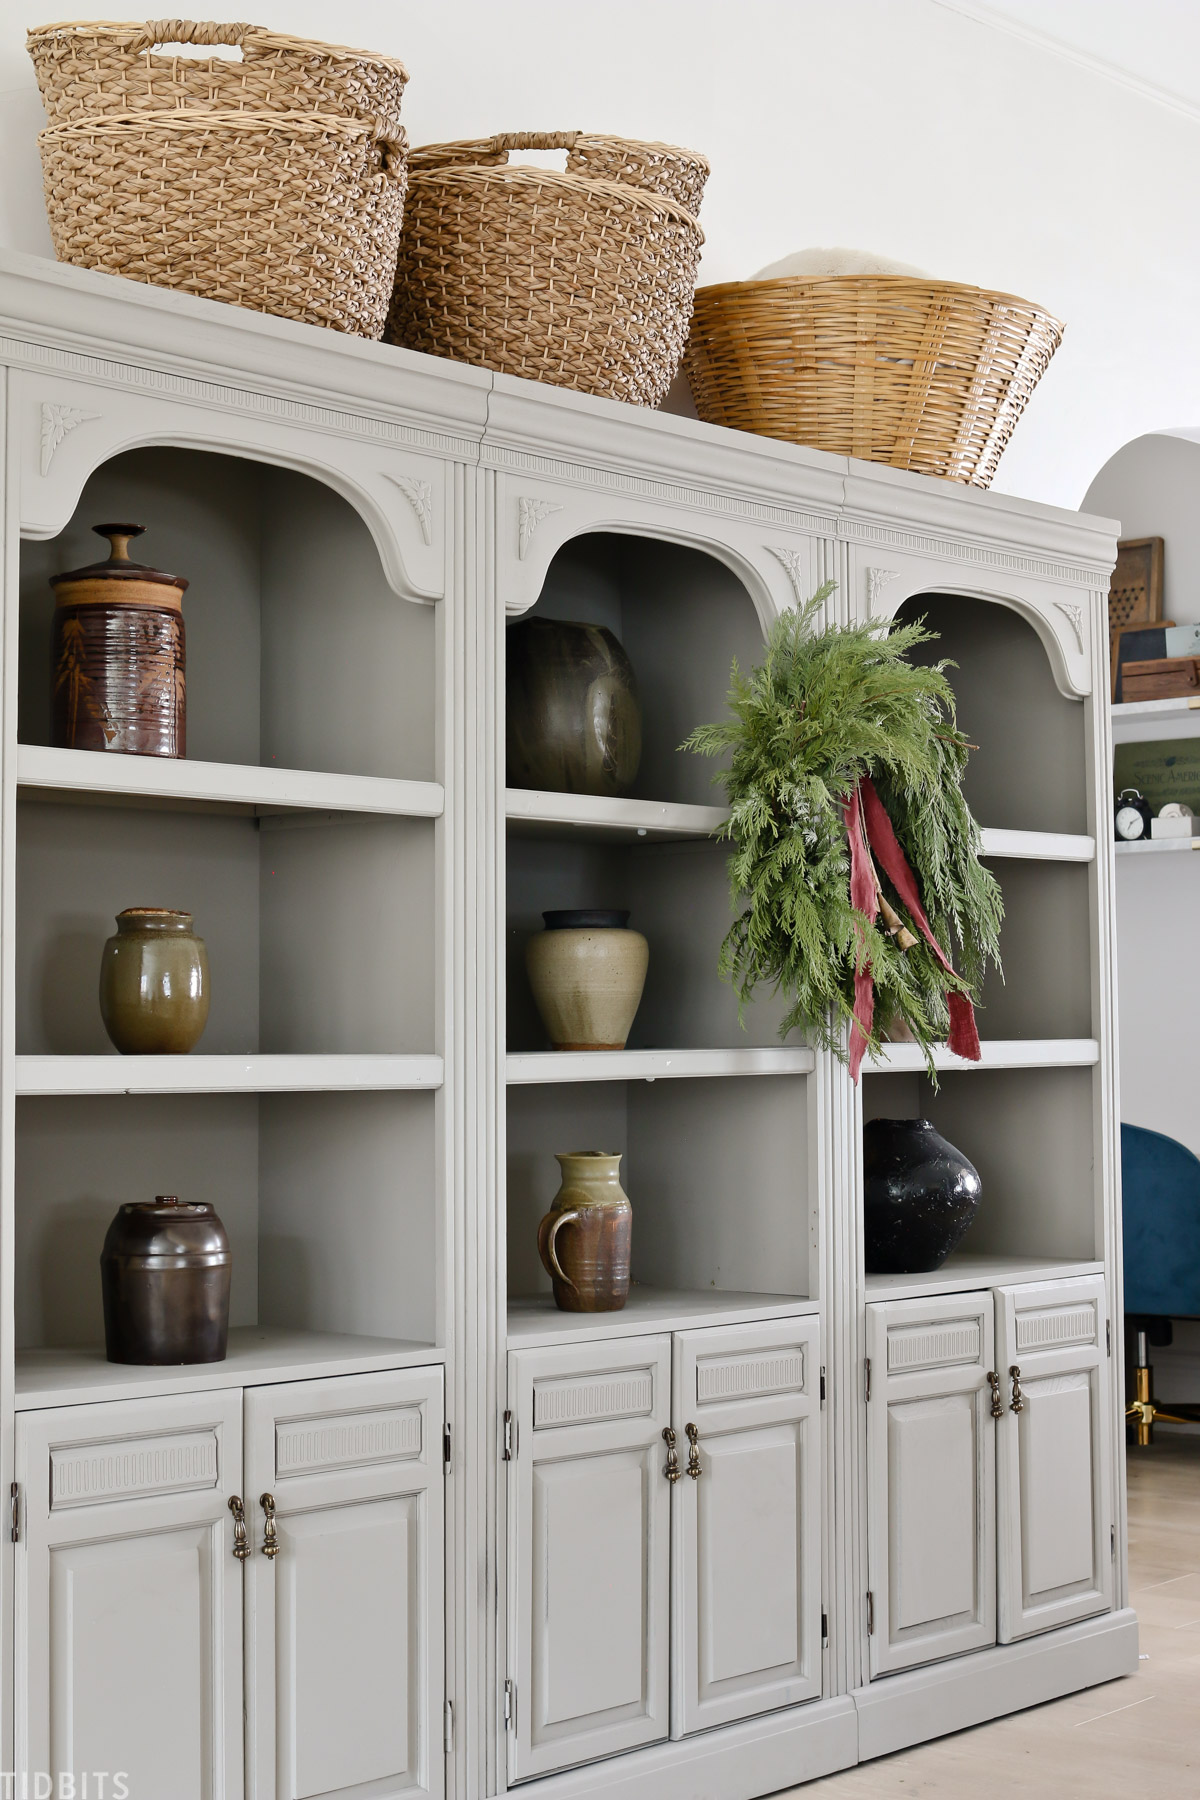 refurbished bookshelves with baskets and vases and wreath hanging from center bookshelf